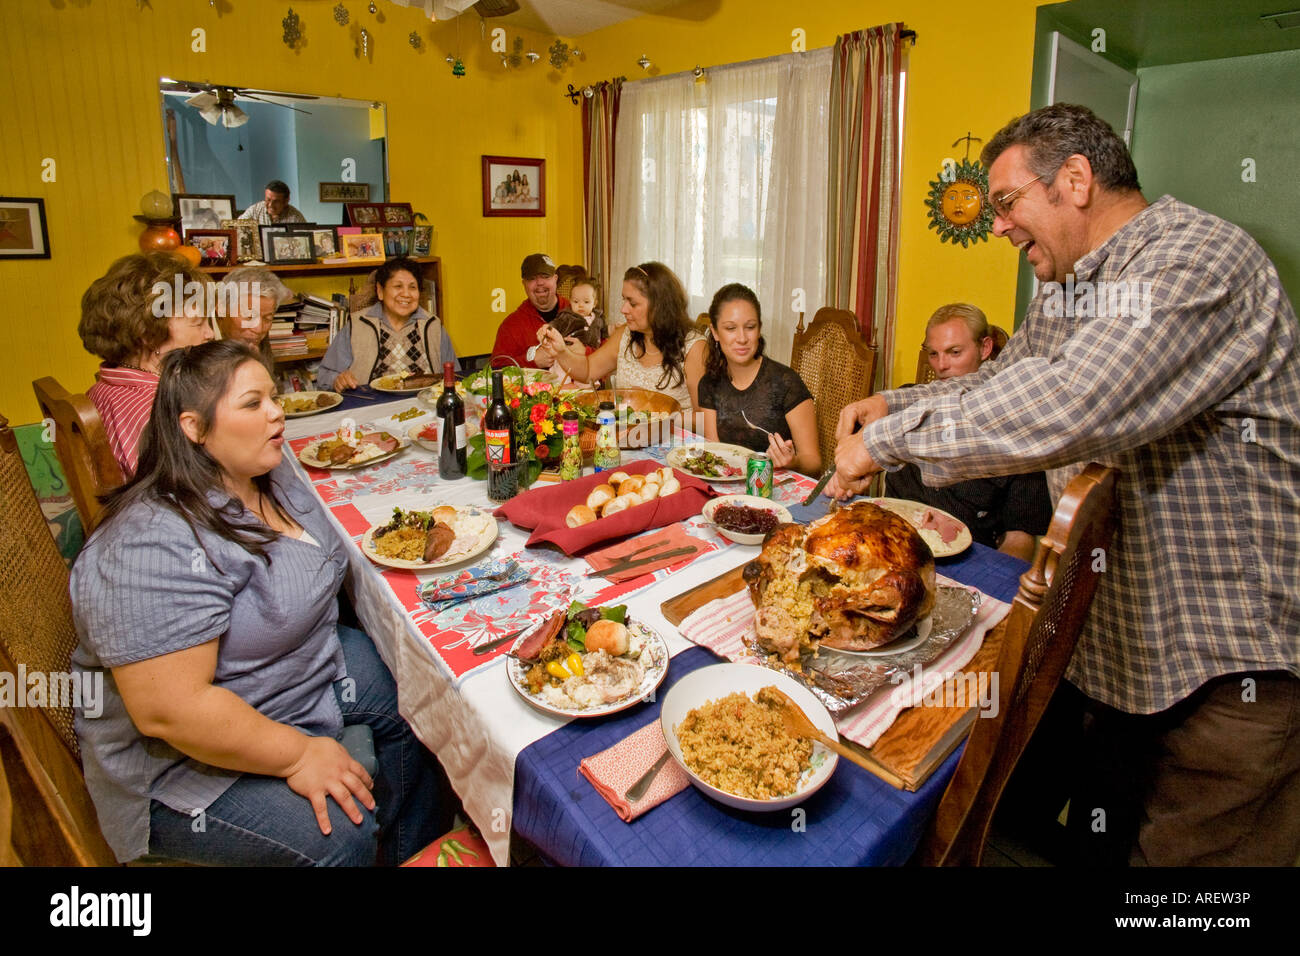 A Hispanic Father Carves The Turkey At Thanksgiving Dinner